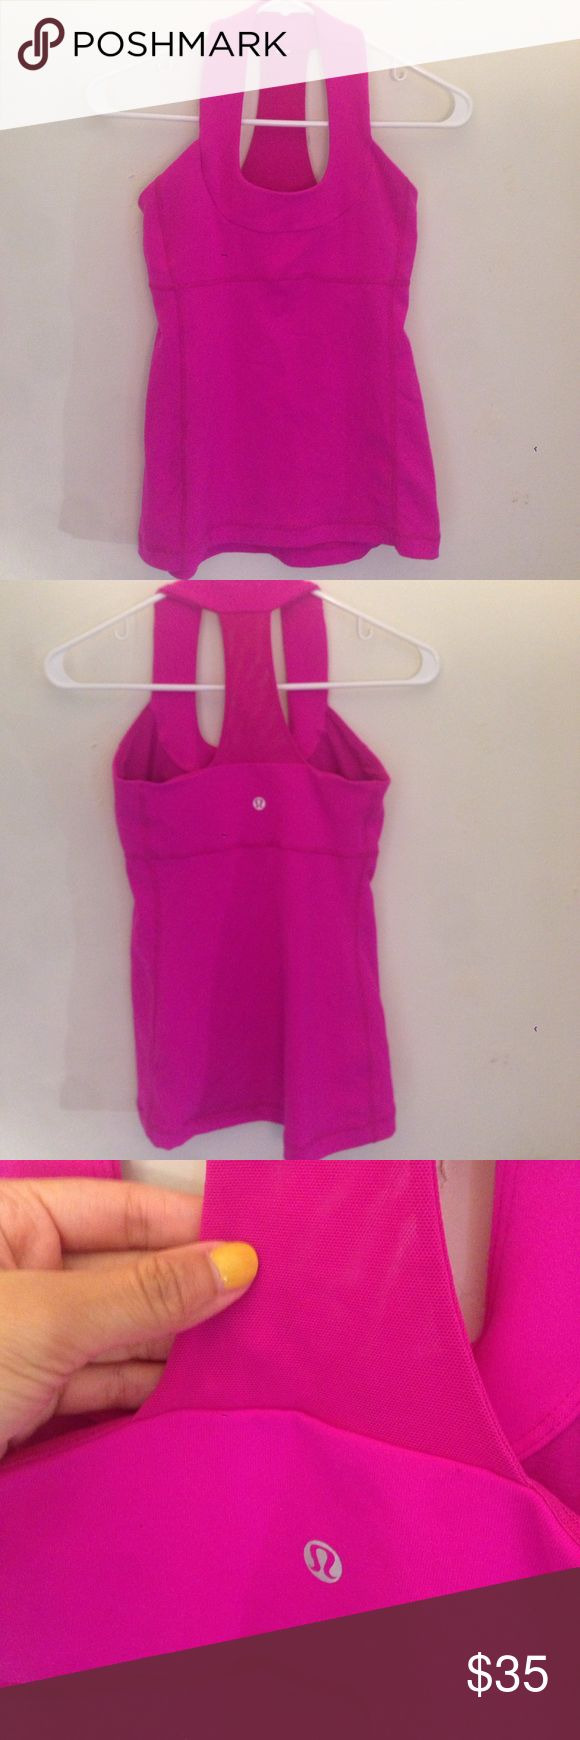 Lululemon Hot Pink Tank Top Halter Style size 4 May have teeny tiny piling but overalll it is in very good condition. The brand tag is missing but size is pictured. Has built in bra lululemon athletica Tops Tank Tops